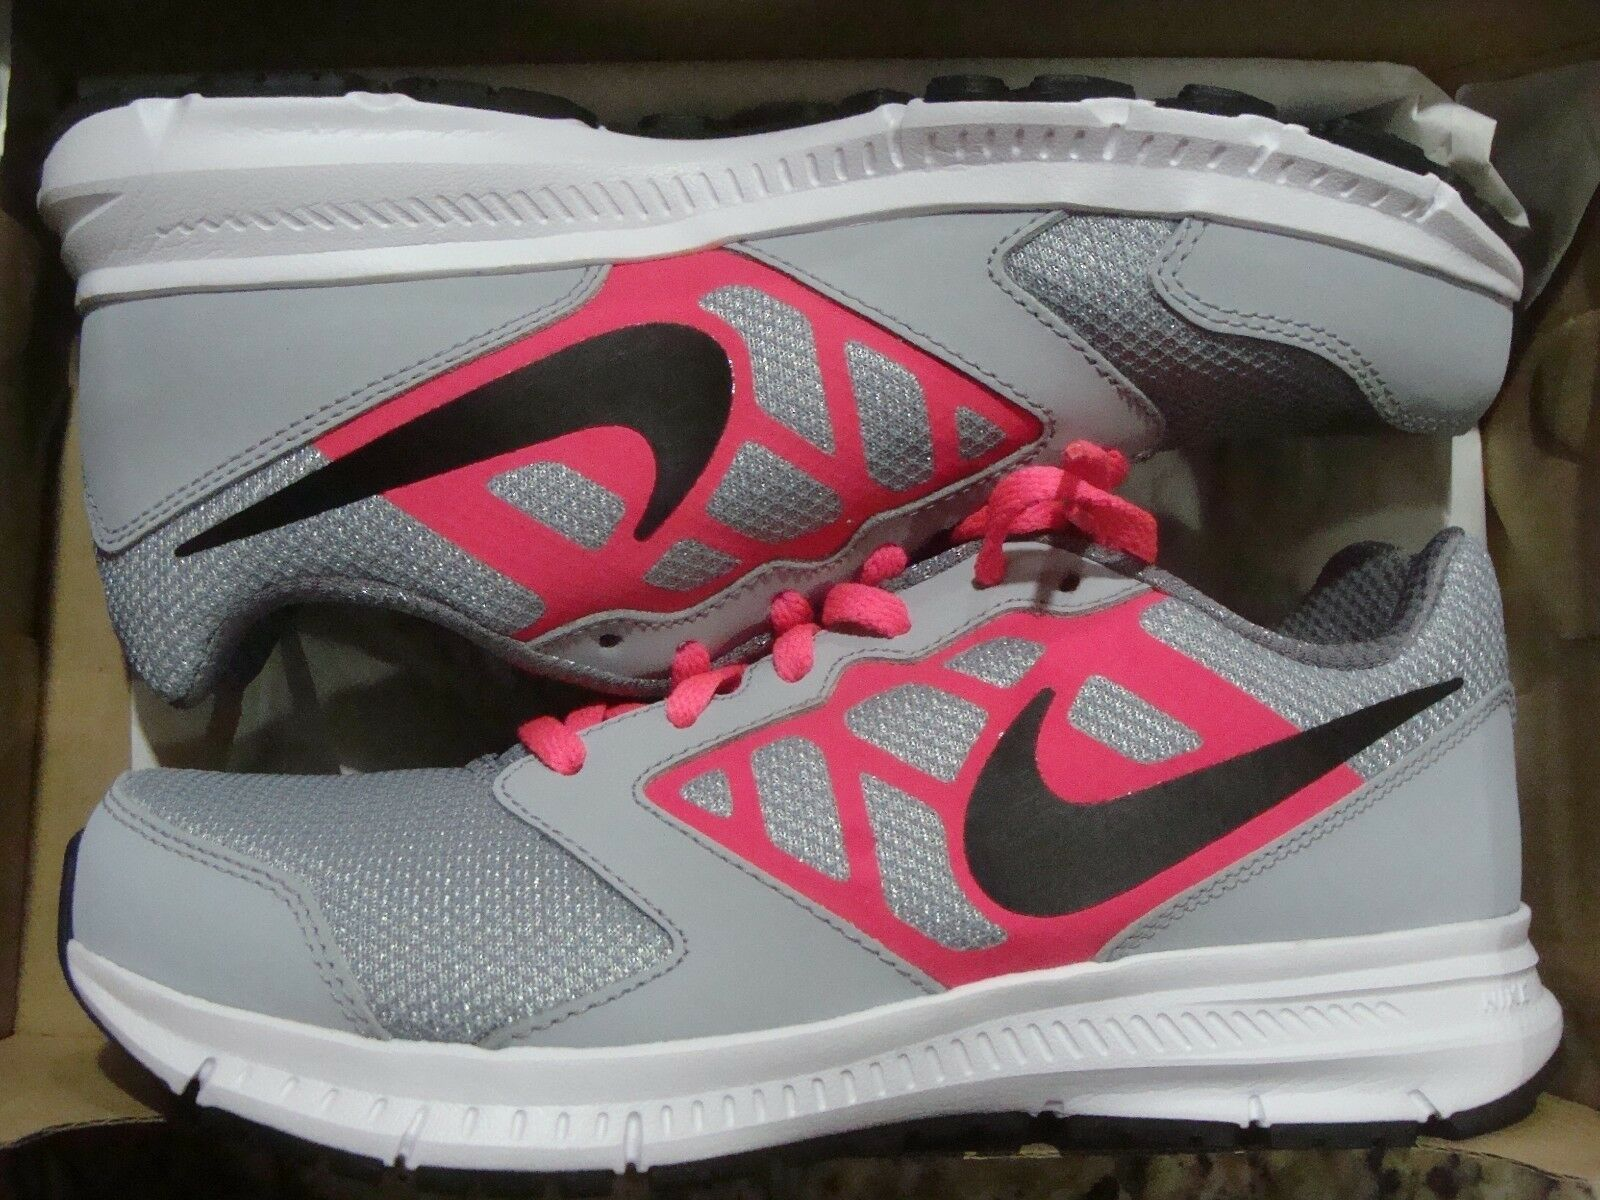 NIKE DOWNSHIFTER 6 (GS/PS) 685167 007